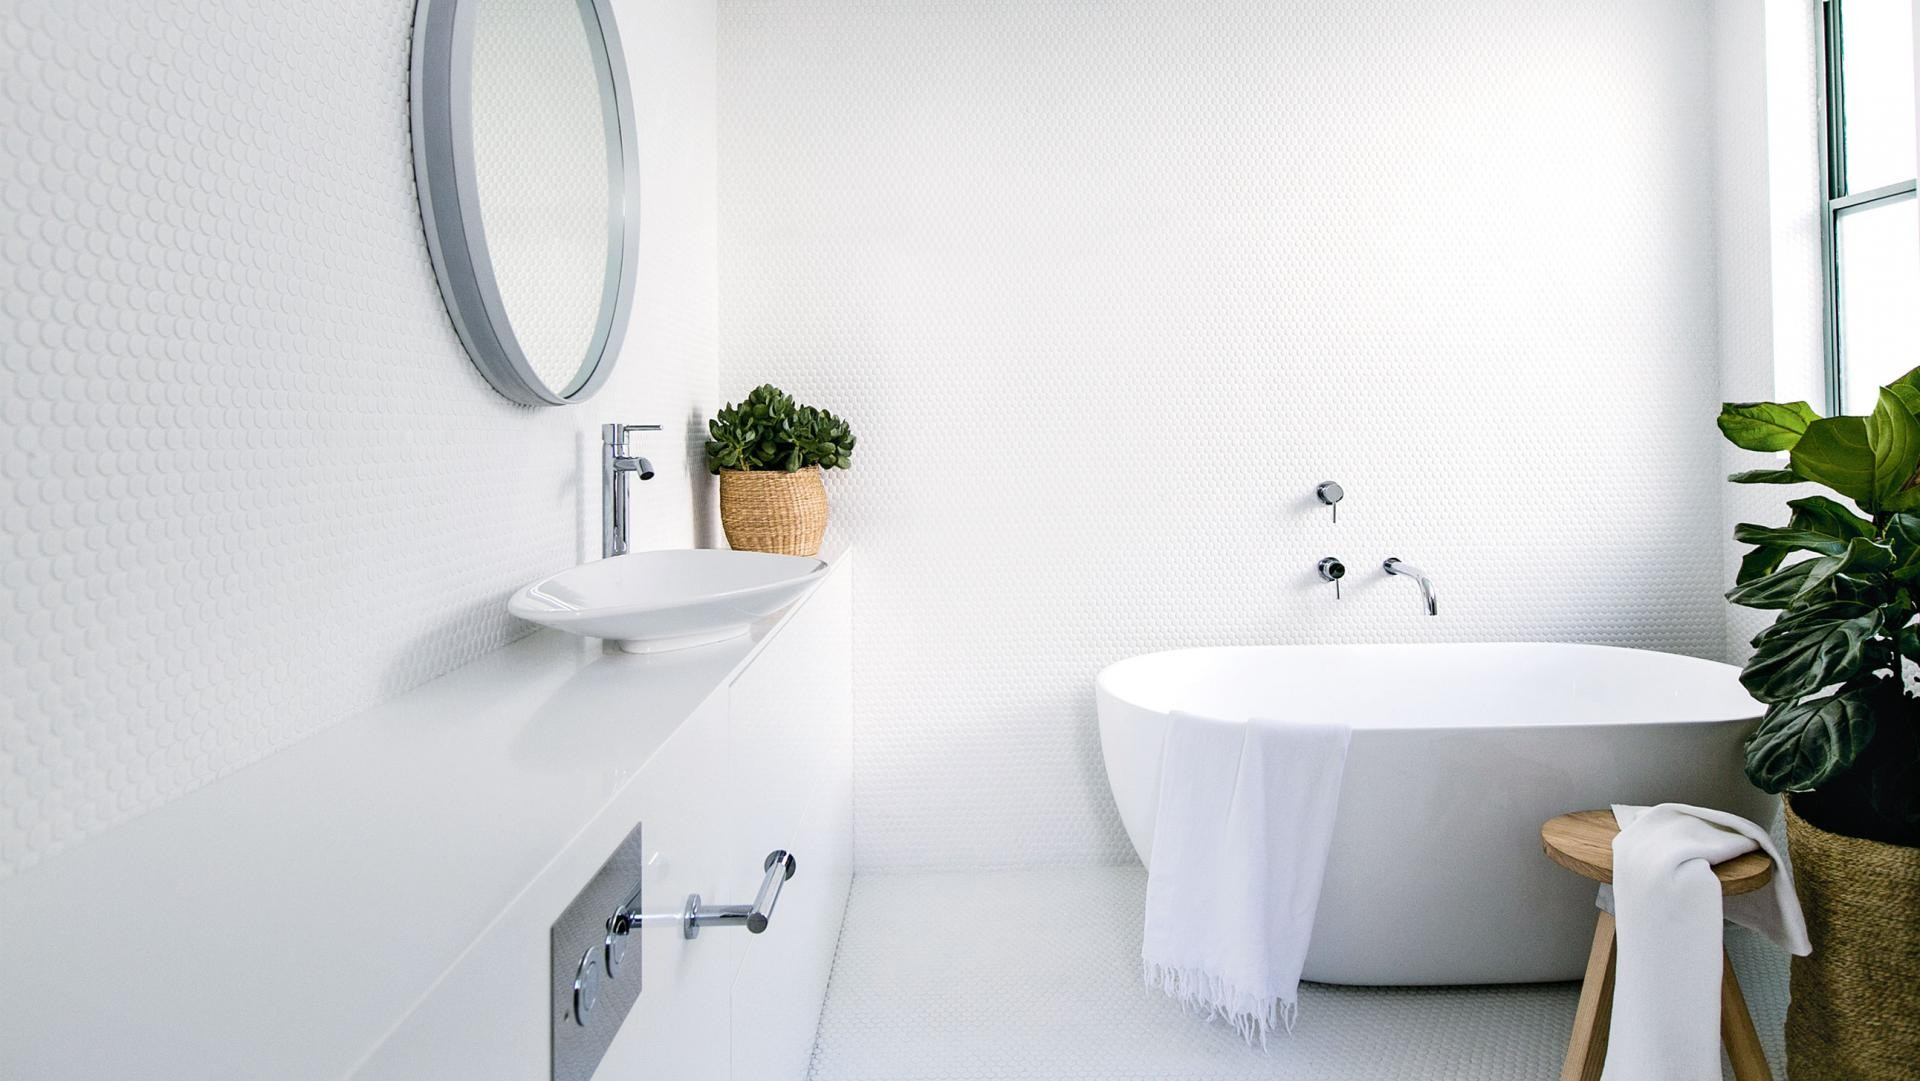 What bathroom designs for large spaces